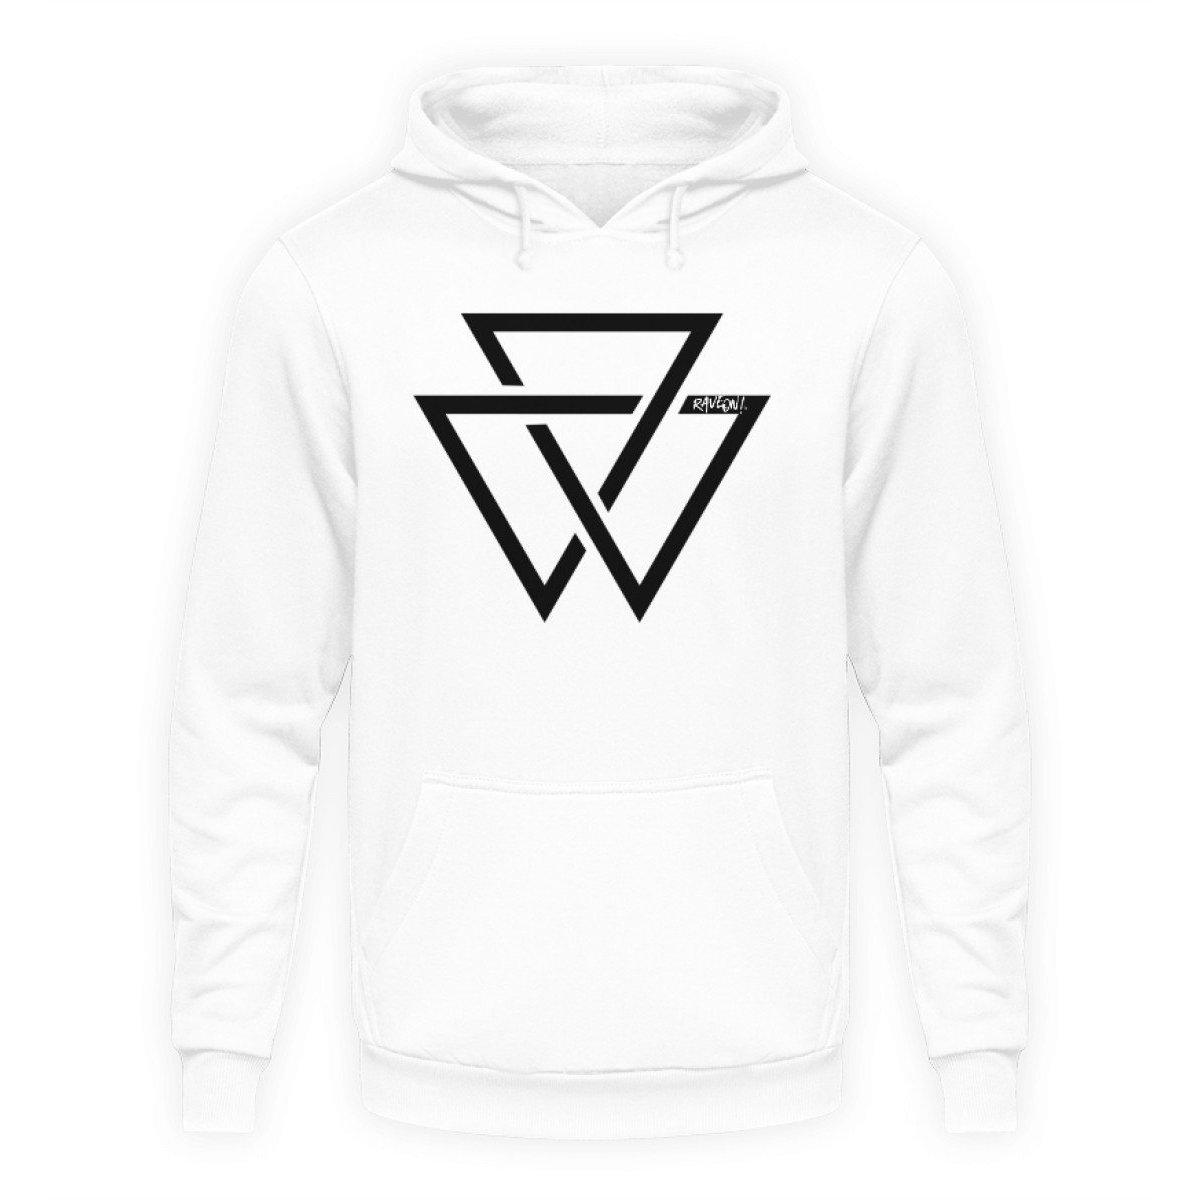 Black Triangle - Rave On!® - Unisex Kapuzenpullover Hoodie Unisex Hoodie Arctic White / S - Rave On!® der Club & Techno Szene Shop für Coole Junge Mode Streetwear Style & Fashion Outfits + Sexy Festival 420 Stuff